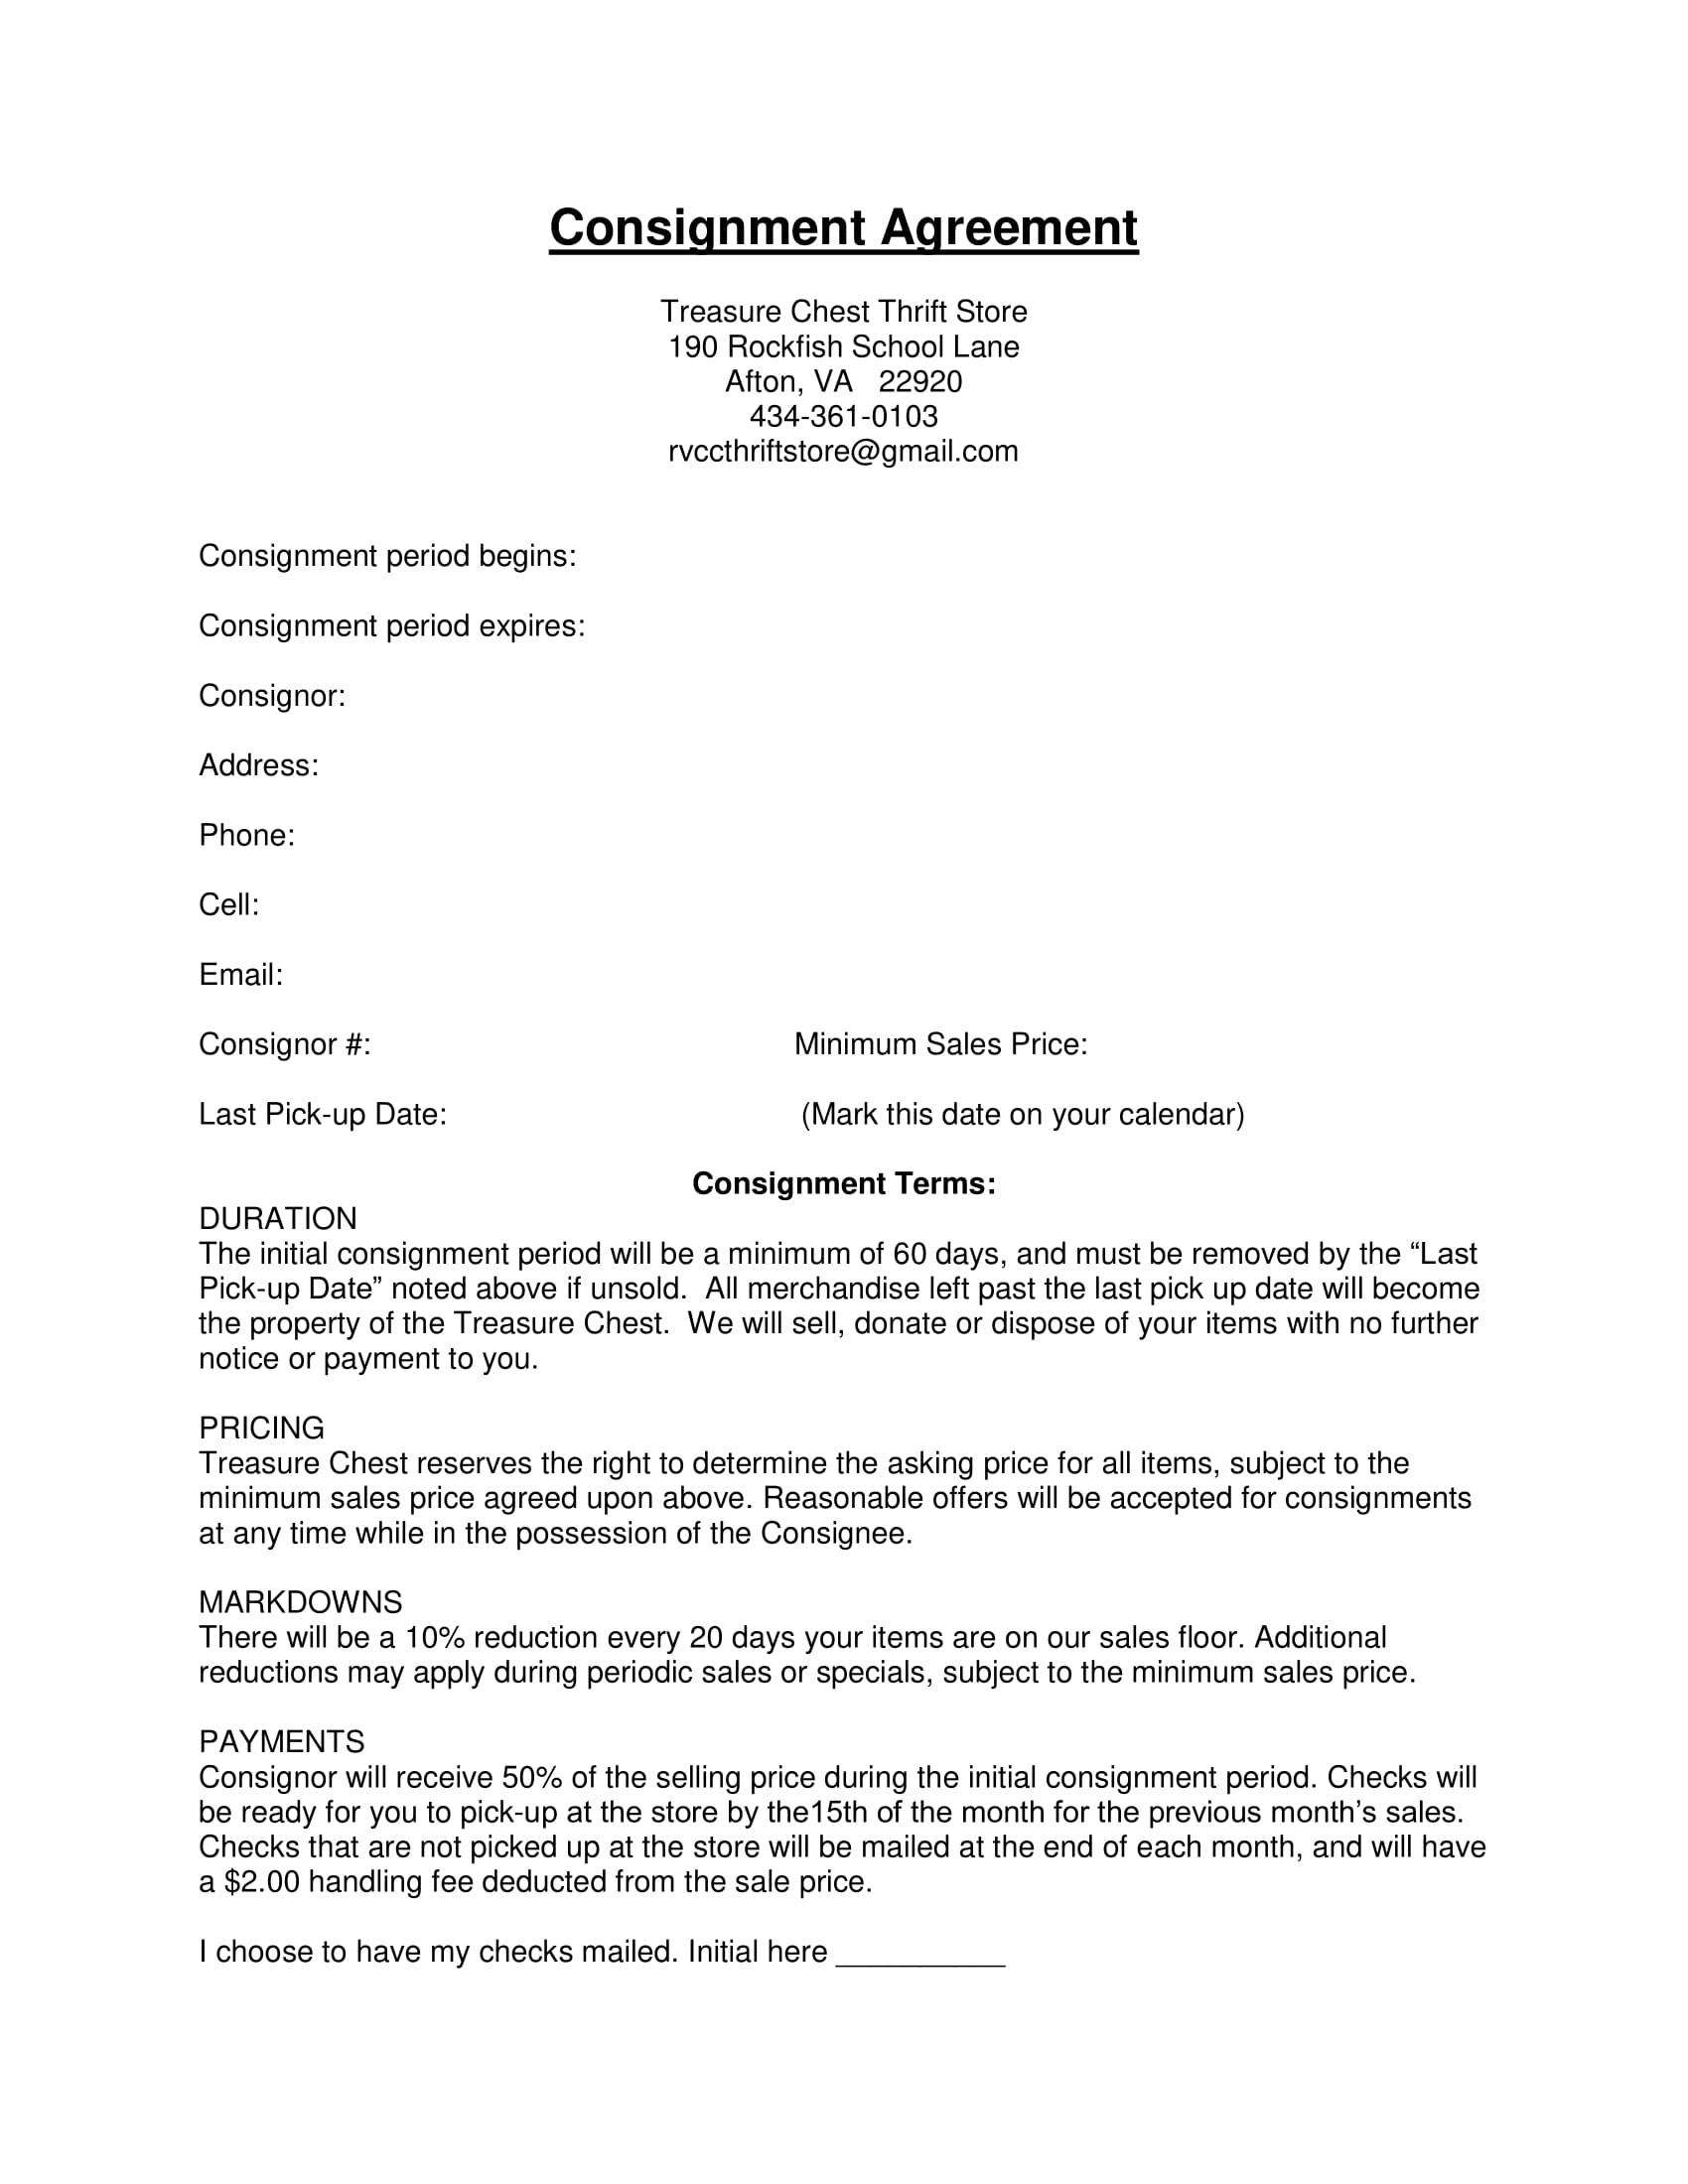 thrift store consignment agreement example